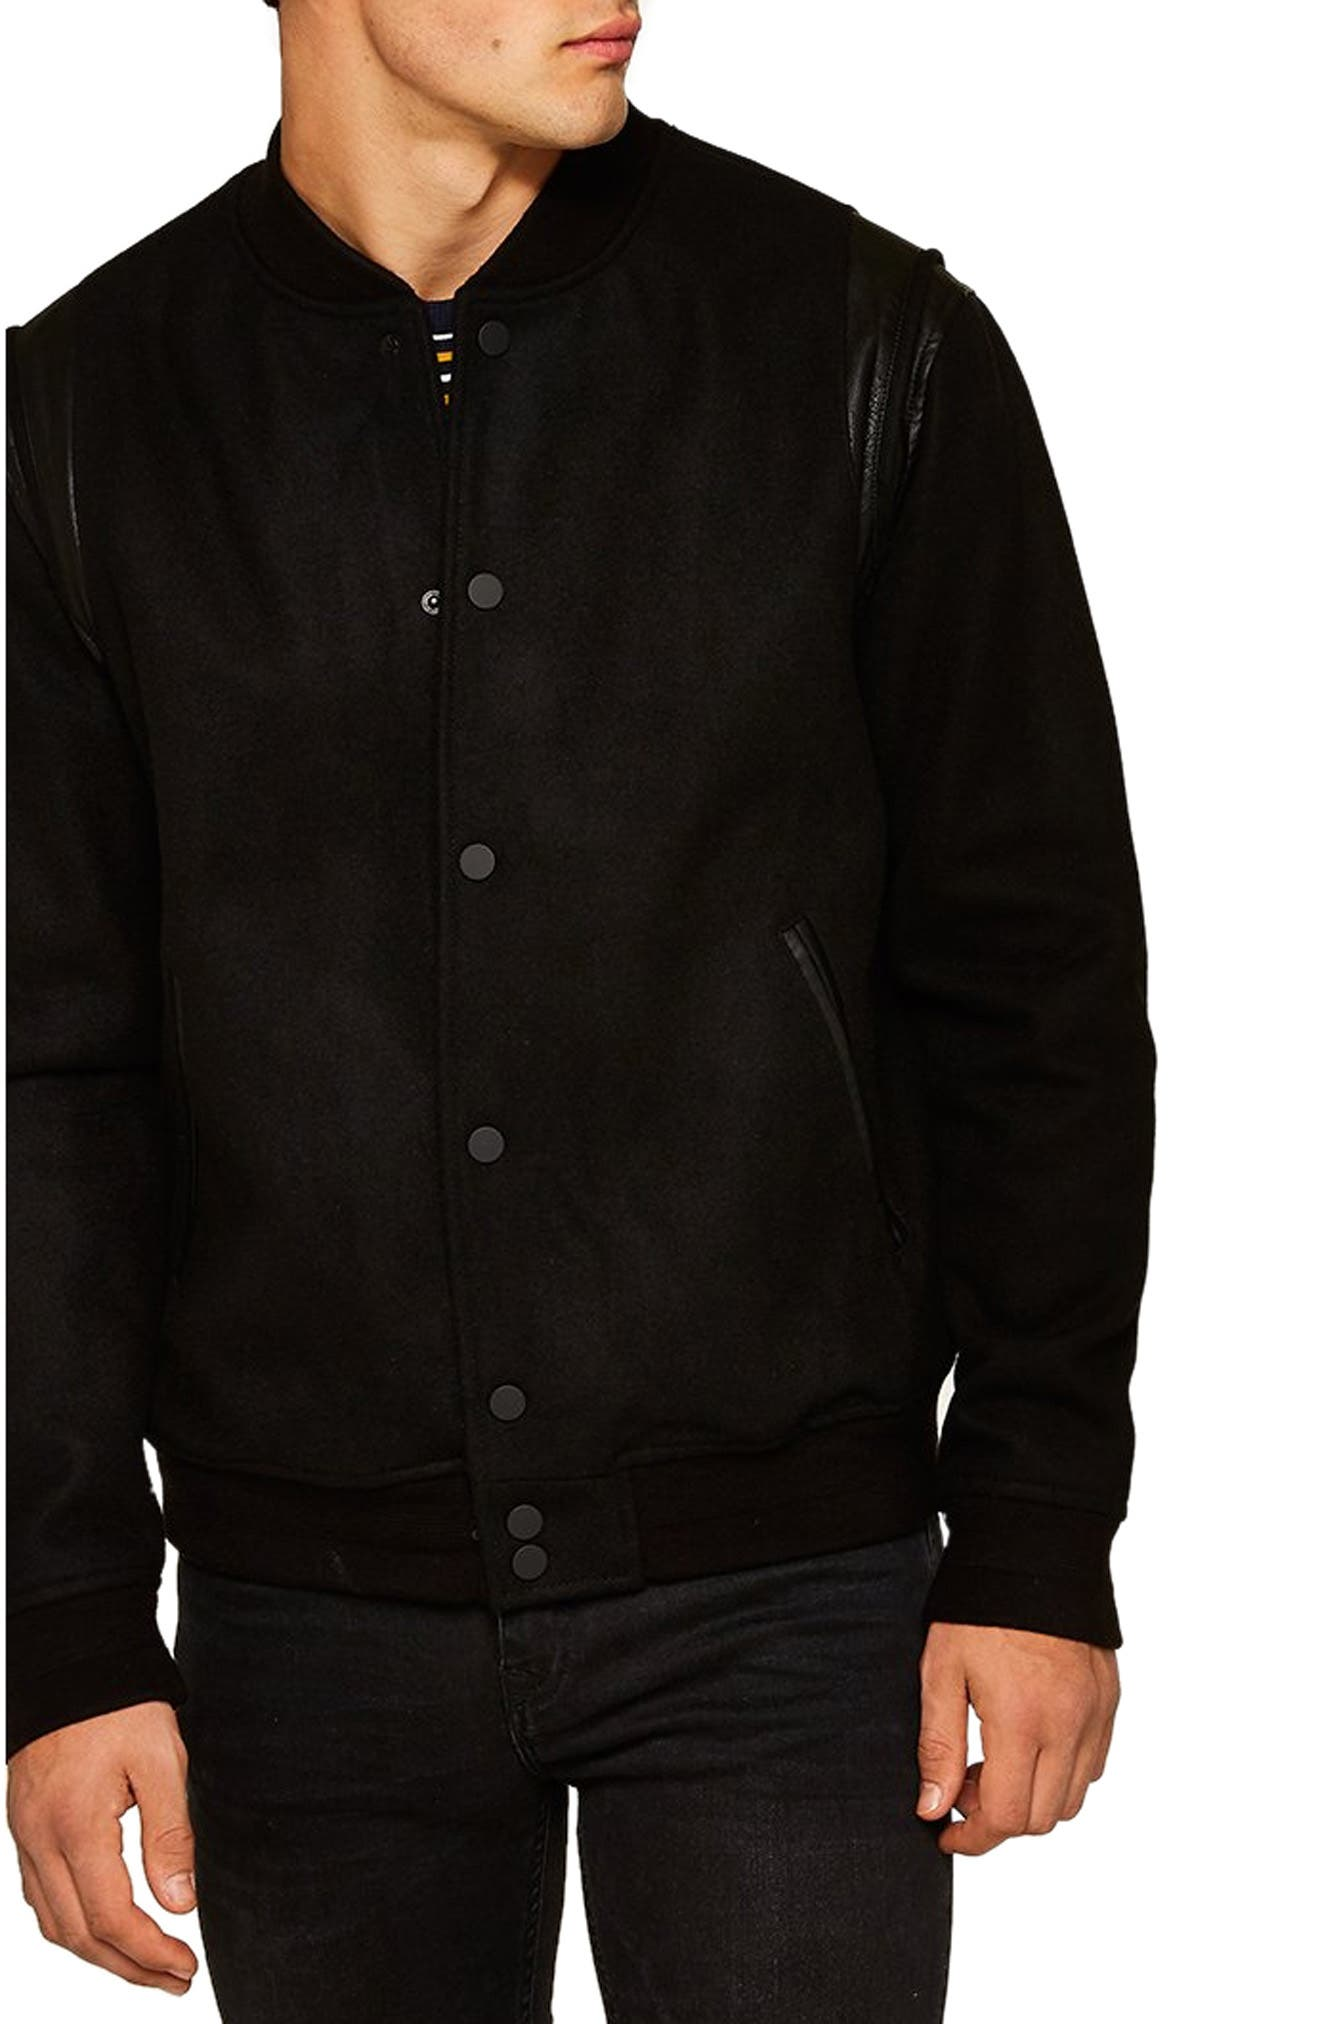 Wool Blend Varsity Jacket,                             Main thumbnail 1, color,                             BLACK